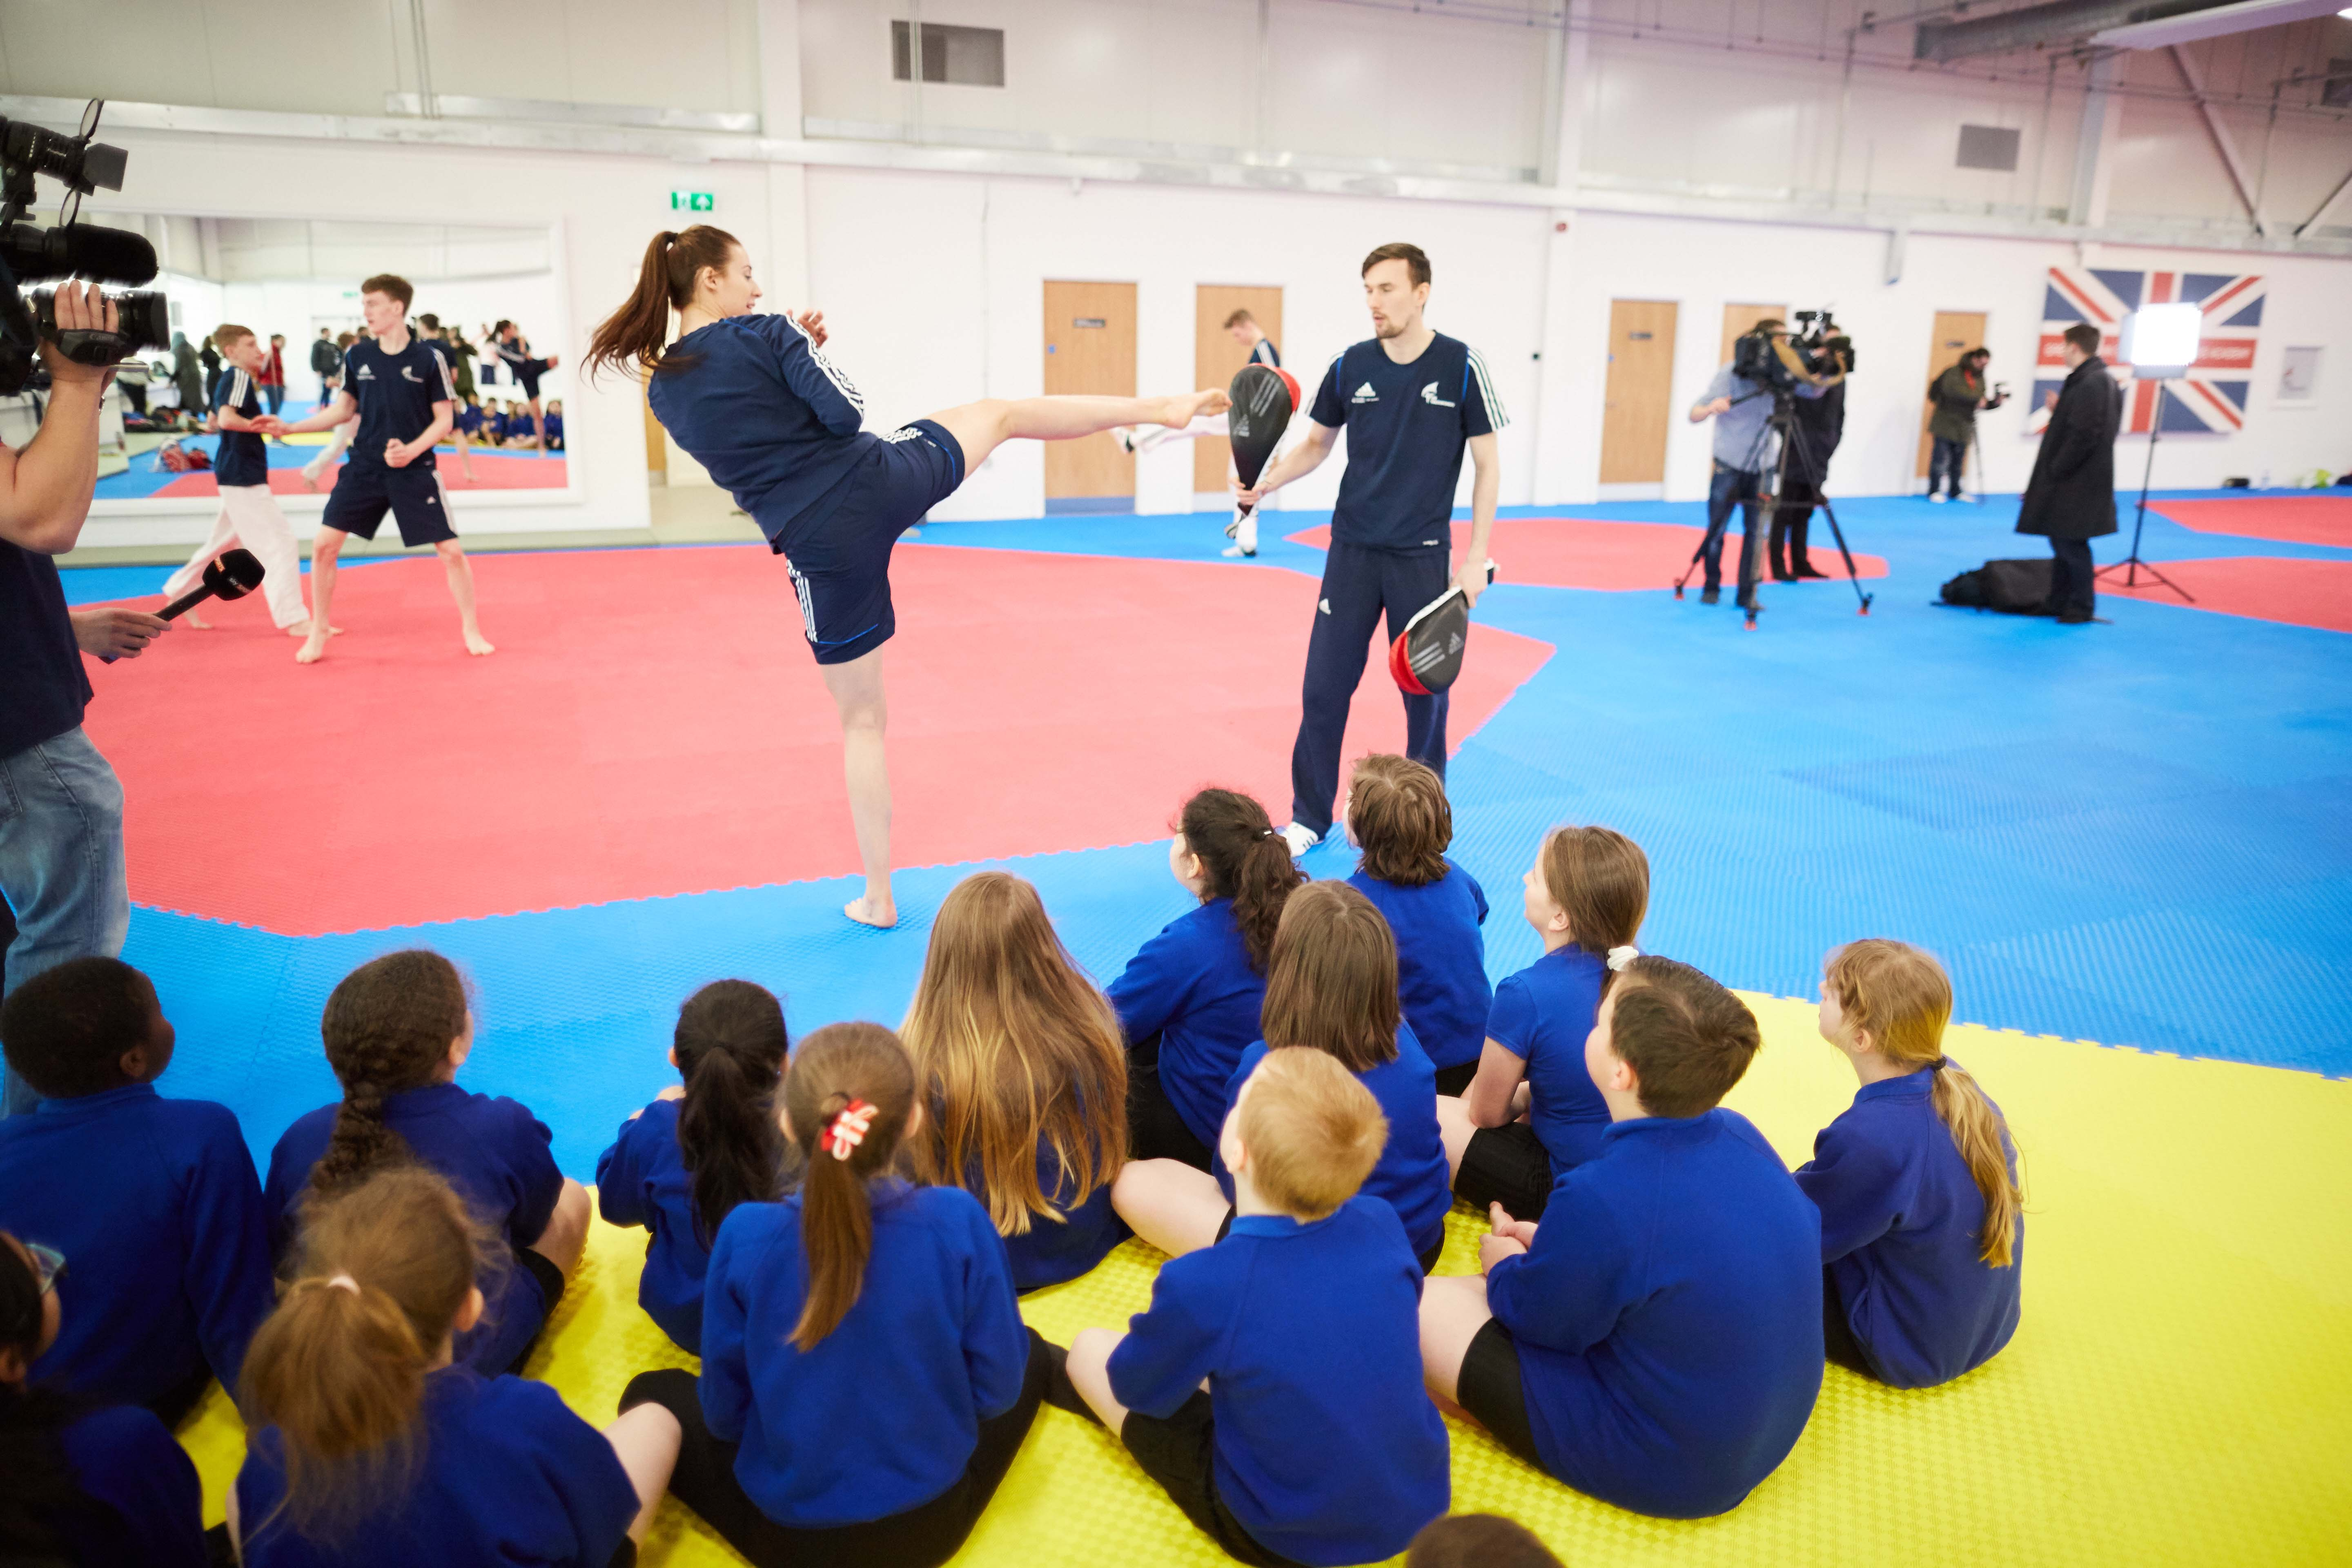 National Taekwondo Centre in Manchester official opening of the new Centre after a £3m transformation. Pictured children watching the experts